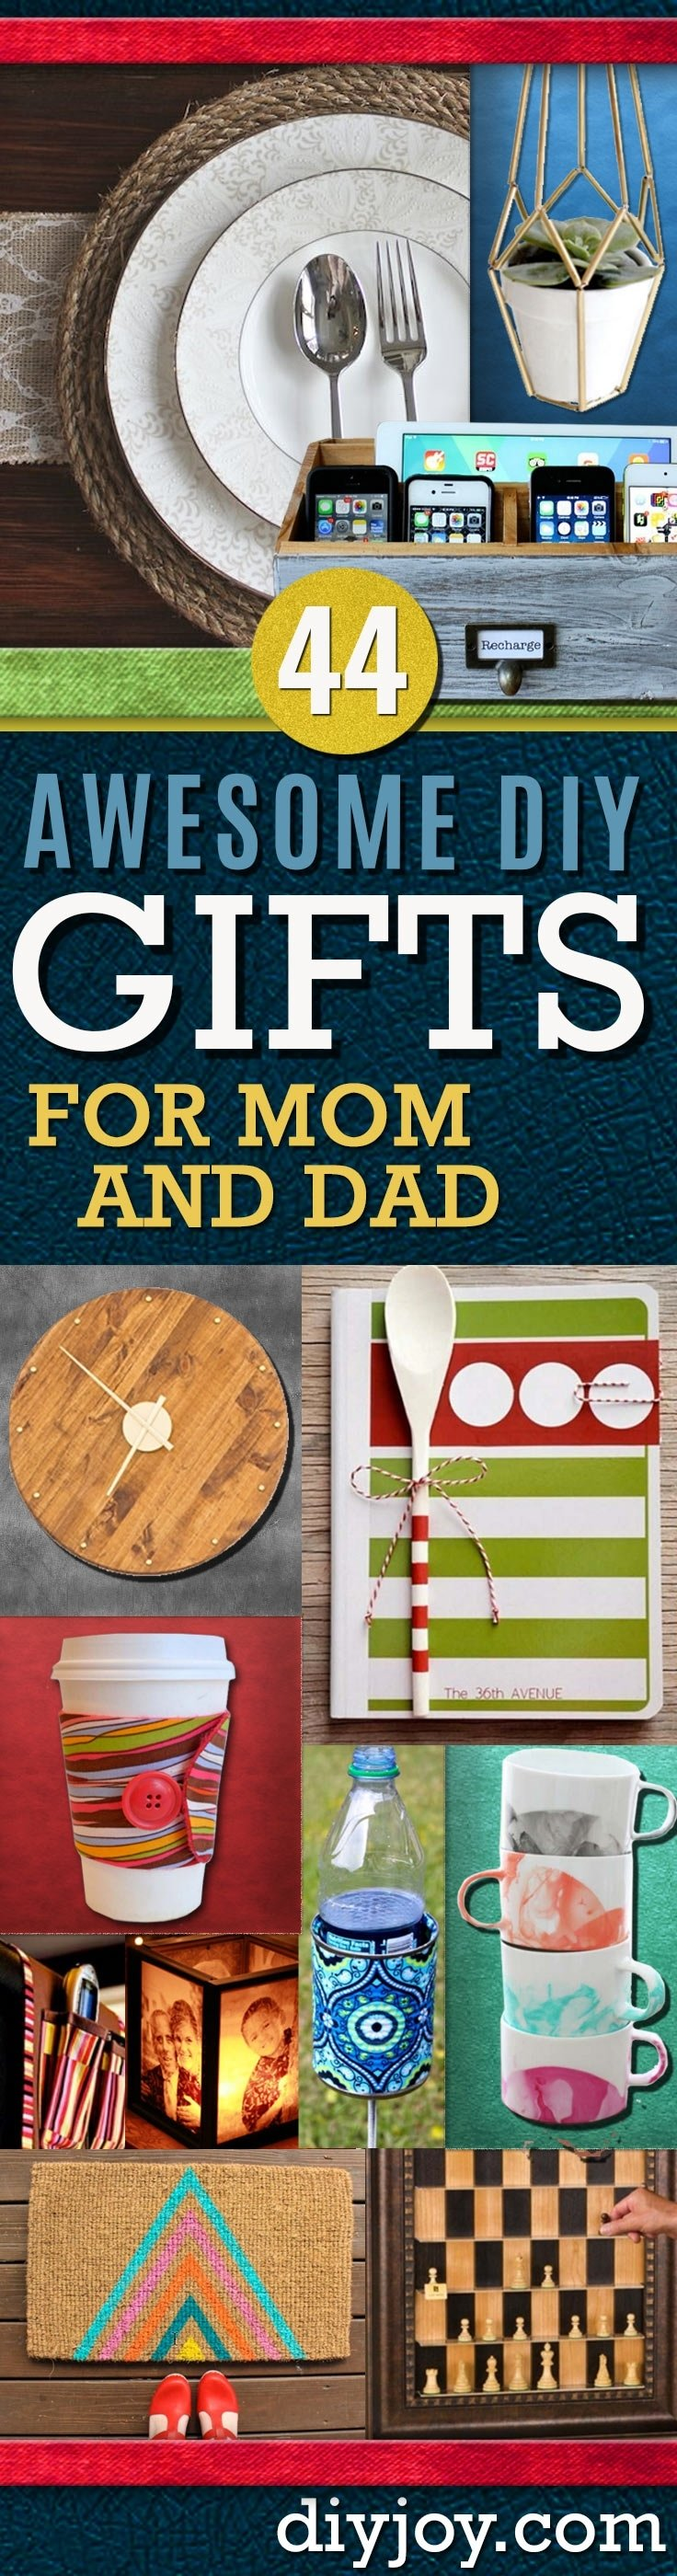 10 Elegant Homemade Gift Ideas For Dad awesome diy gift ideas mom and dad will love 19 2021